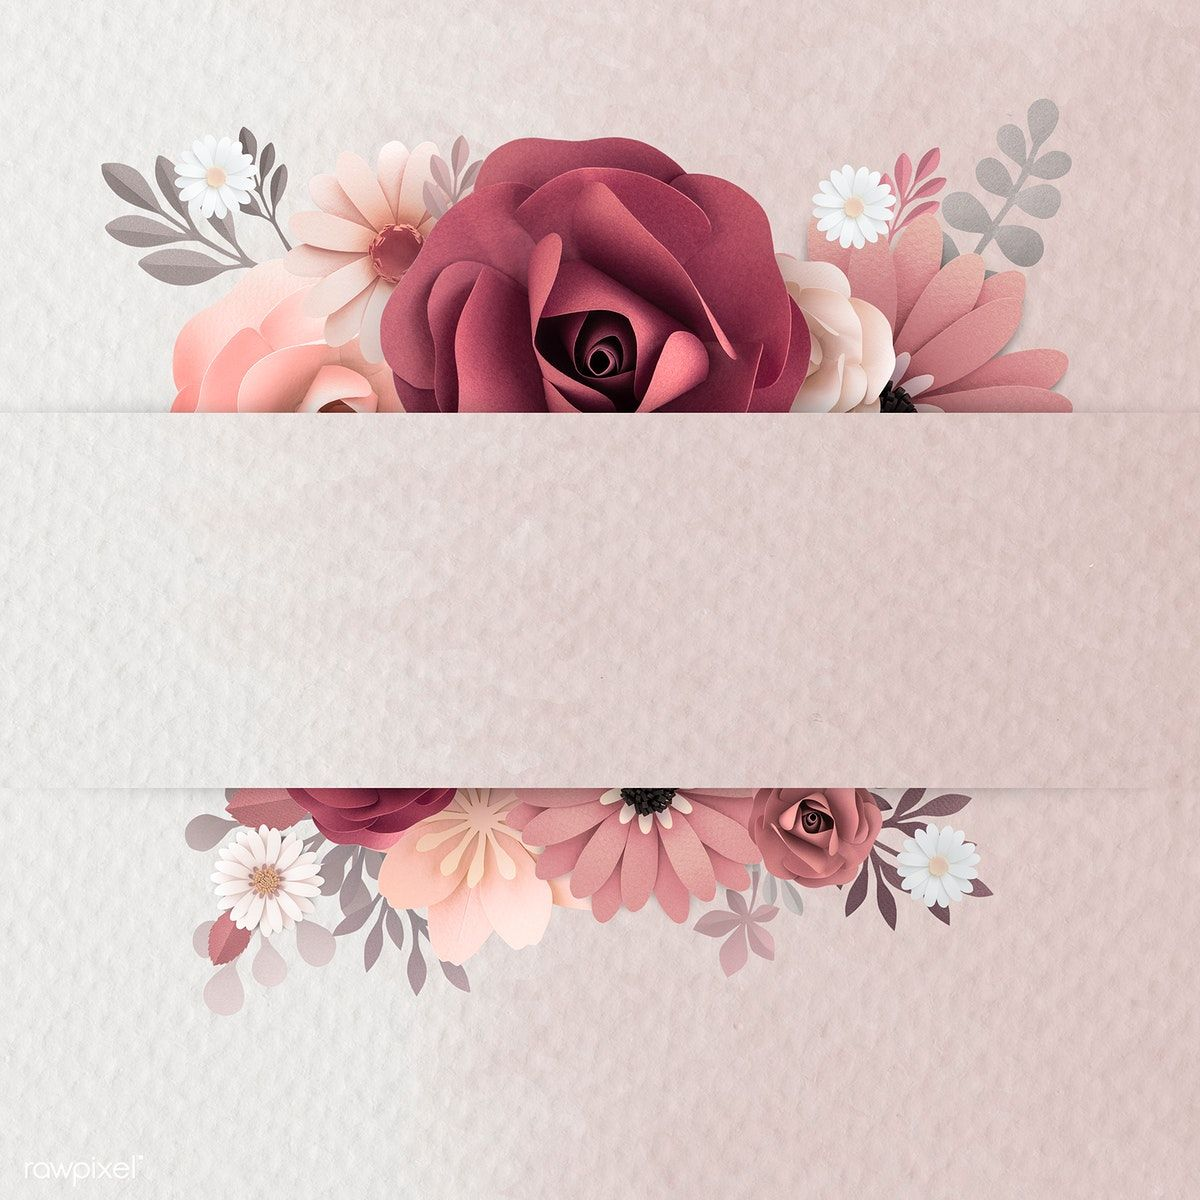 Download premium psd / image of Red paper craft flower banner illustration by PLOYPLOY about paper craft flowers frame, Floral paper craft, paper craft flower frame template, paper craft flower, and floral frames 1201309